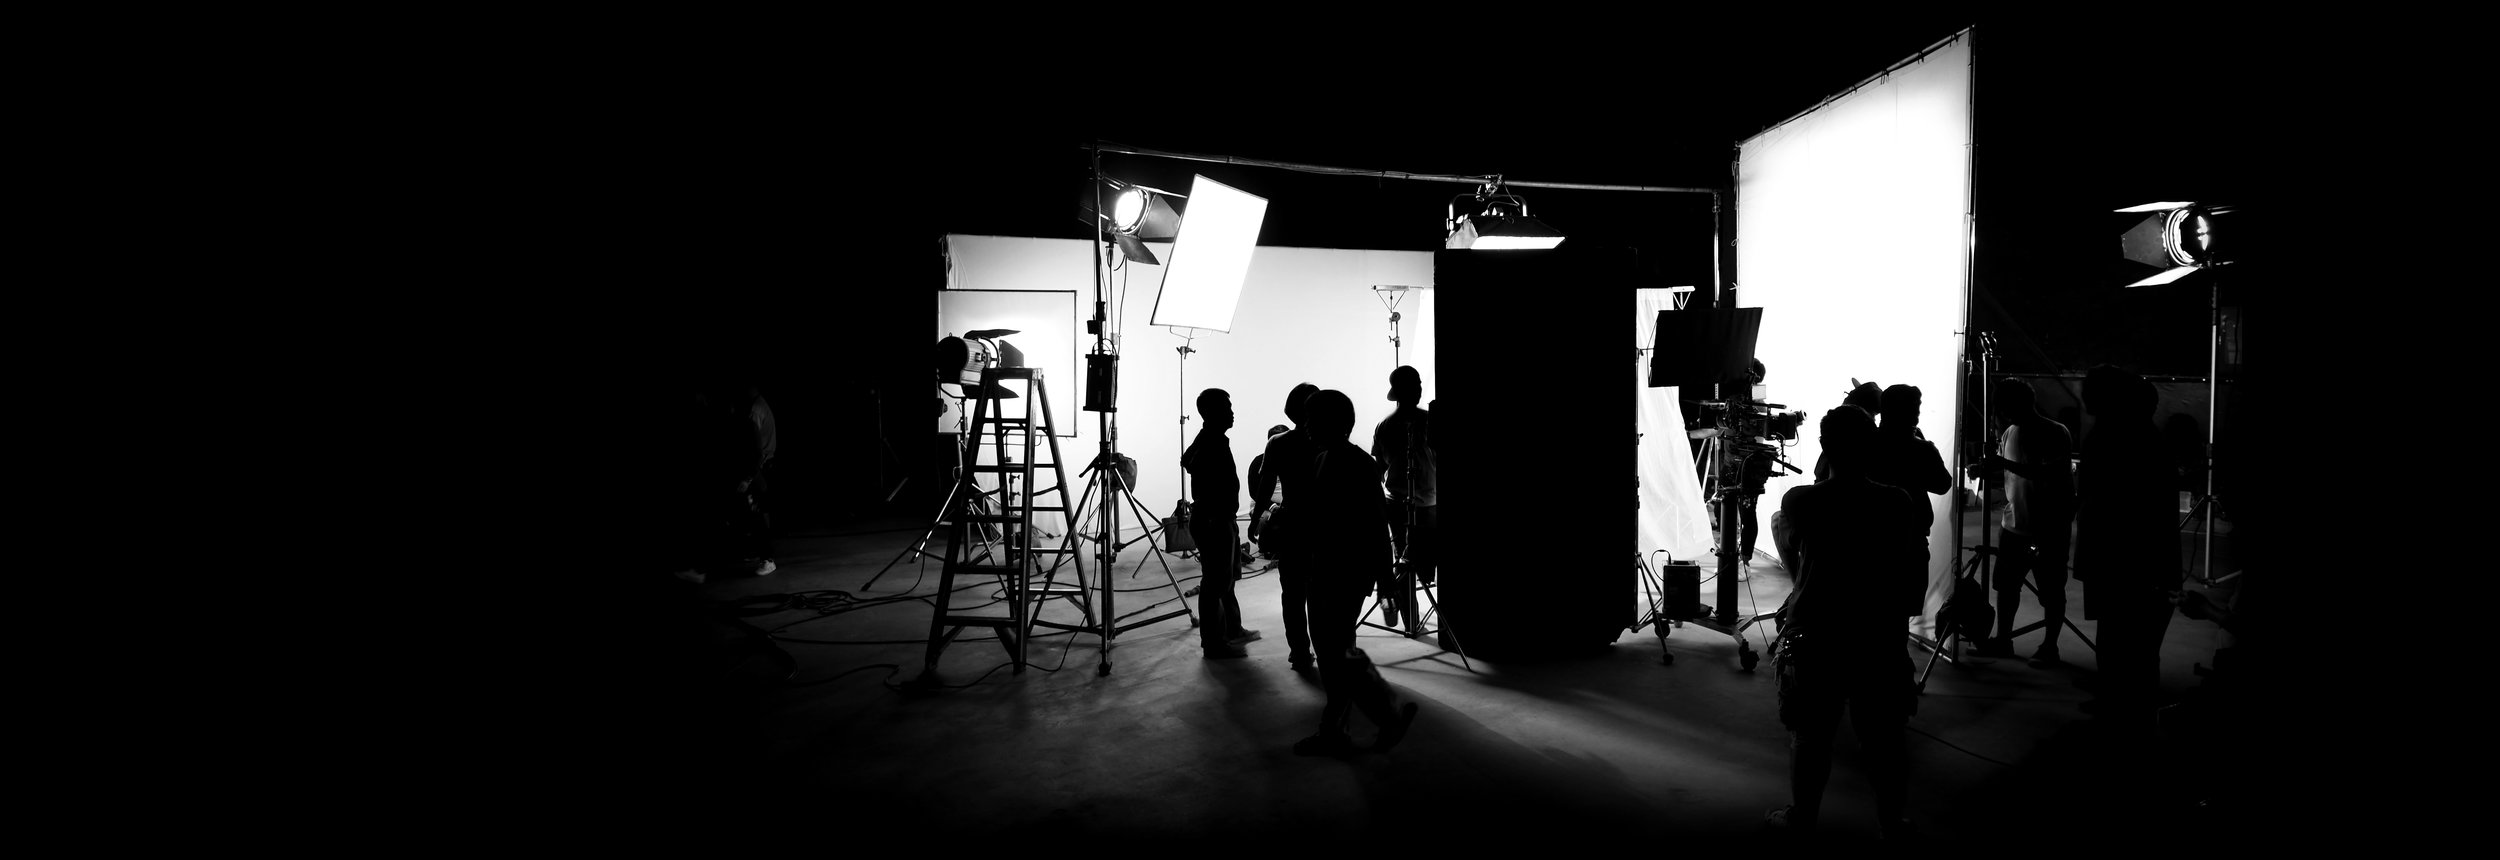 Copy of Silhouette images of video production behind the scenes or b-roll or making of TV commercial movie that film crew team lightman and cameraman working together with director in big studio